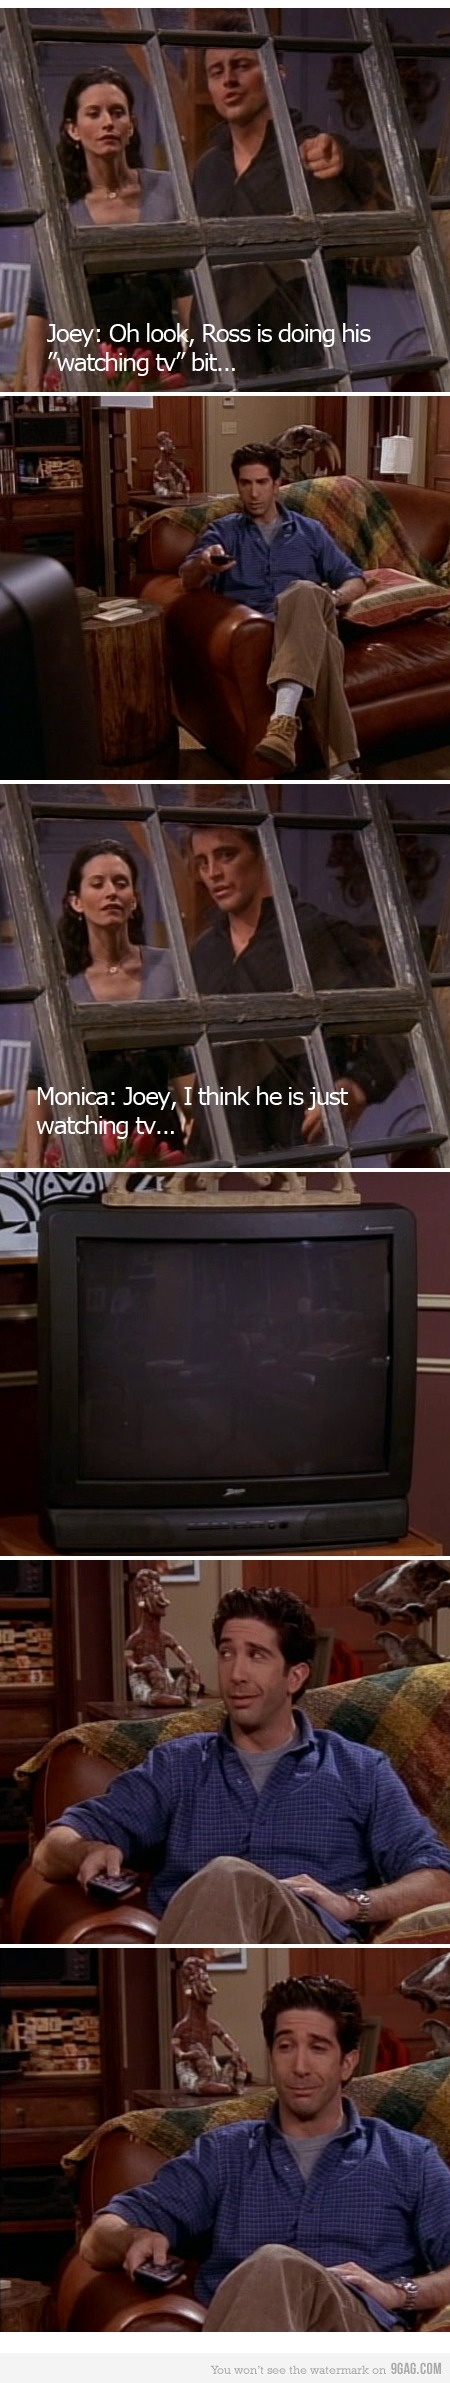 Funniest Friends moment, ever!